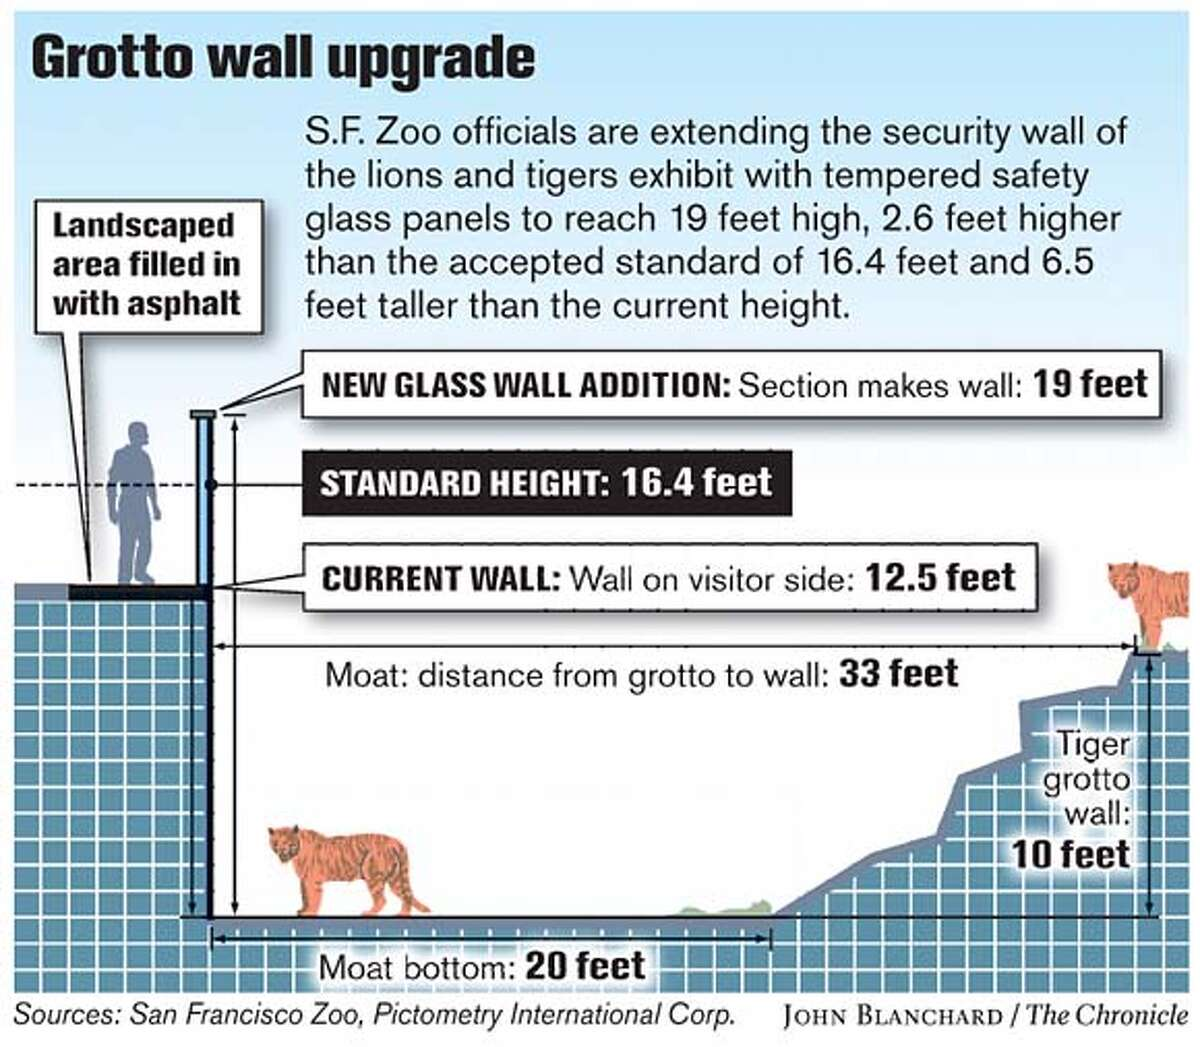 Grotto Wall Upgrade. Chronicle graphic by John Blanchard